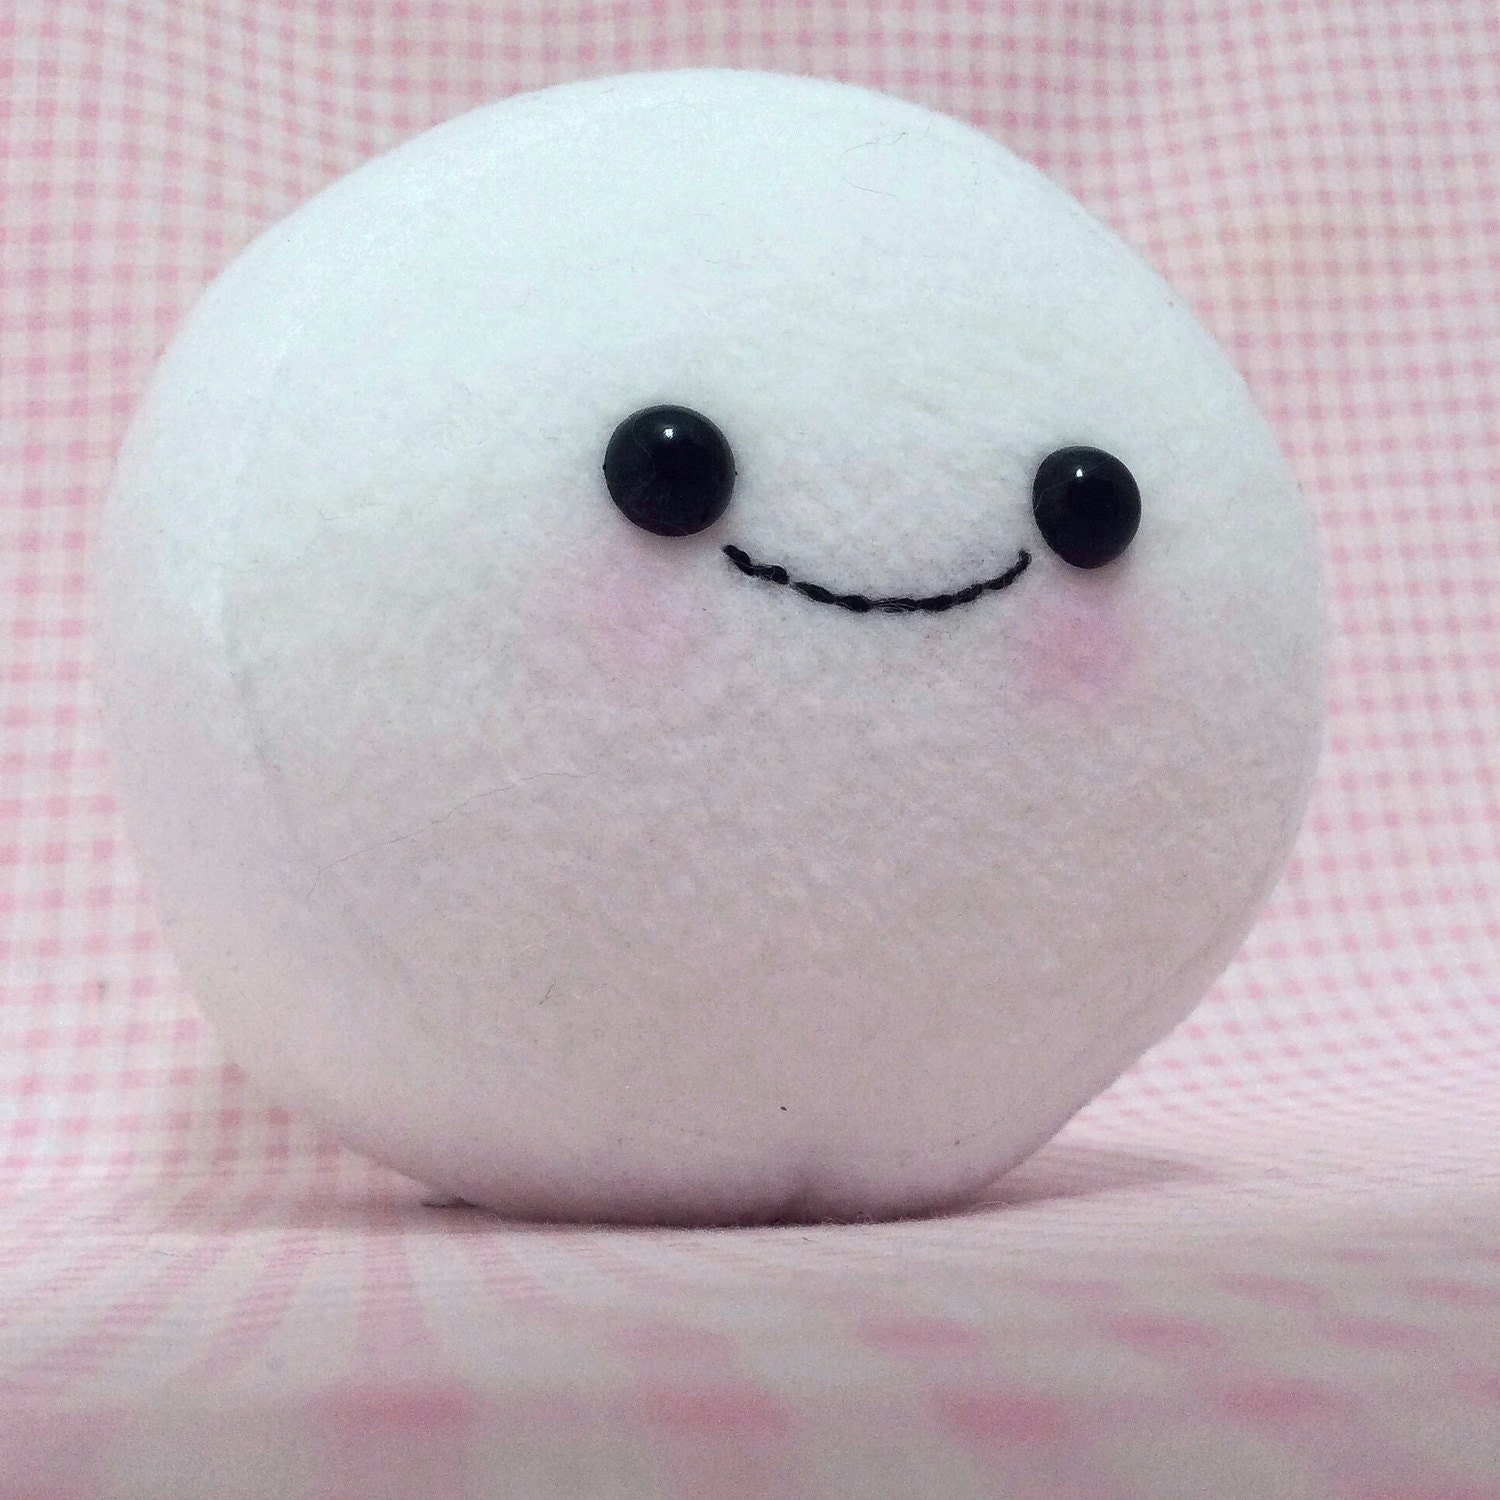 Marshmallow Plush Toy Cloudy with a Chance of Meatballs Style